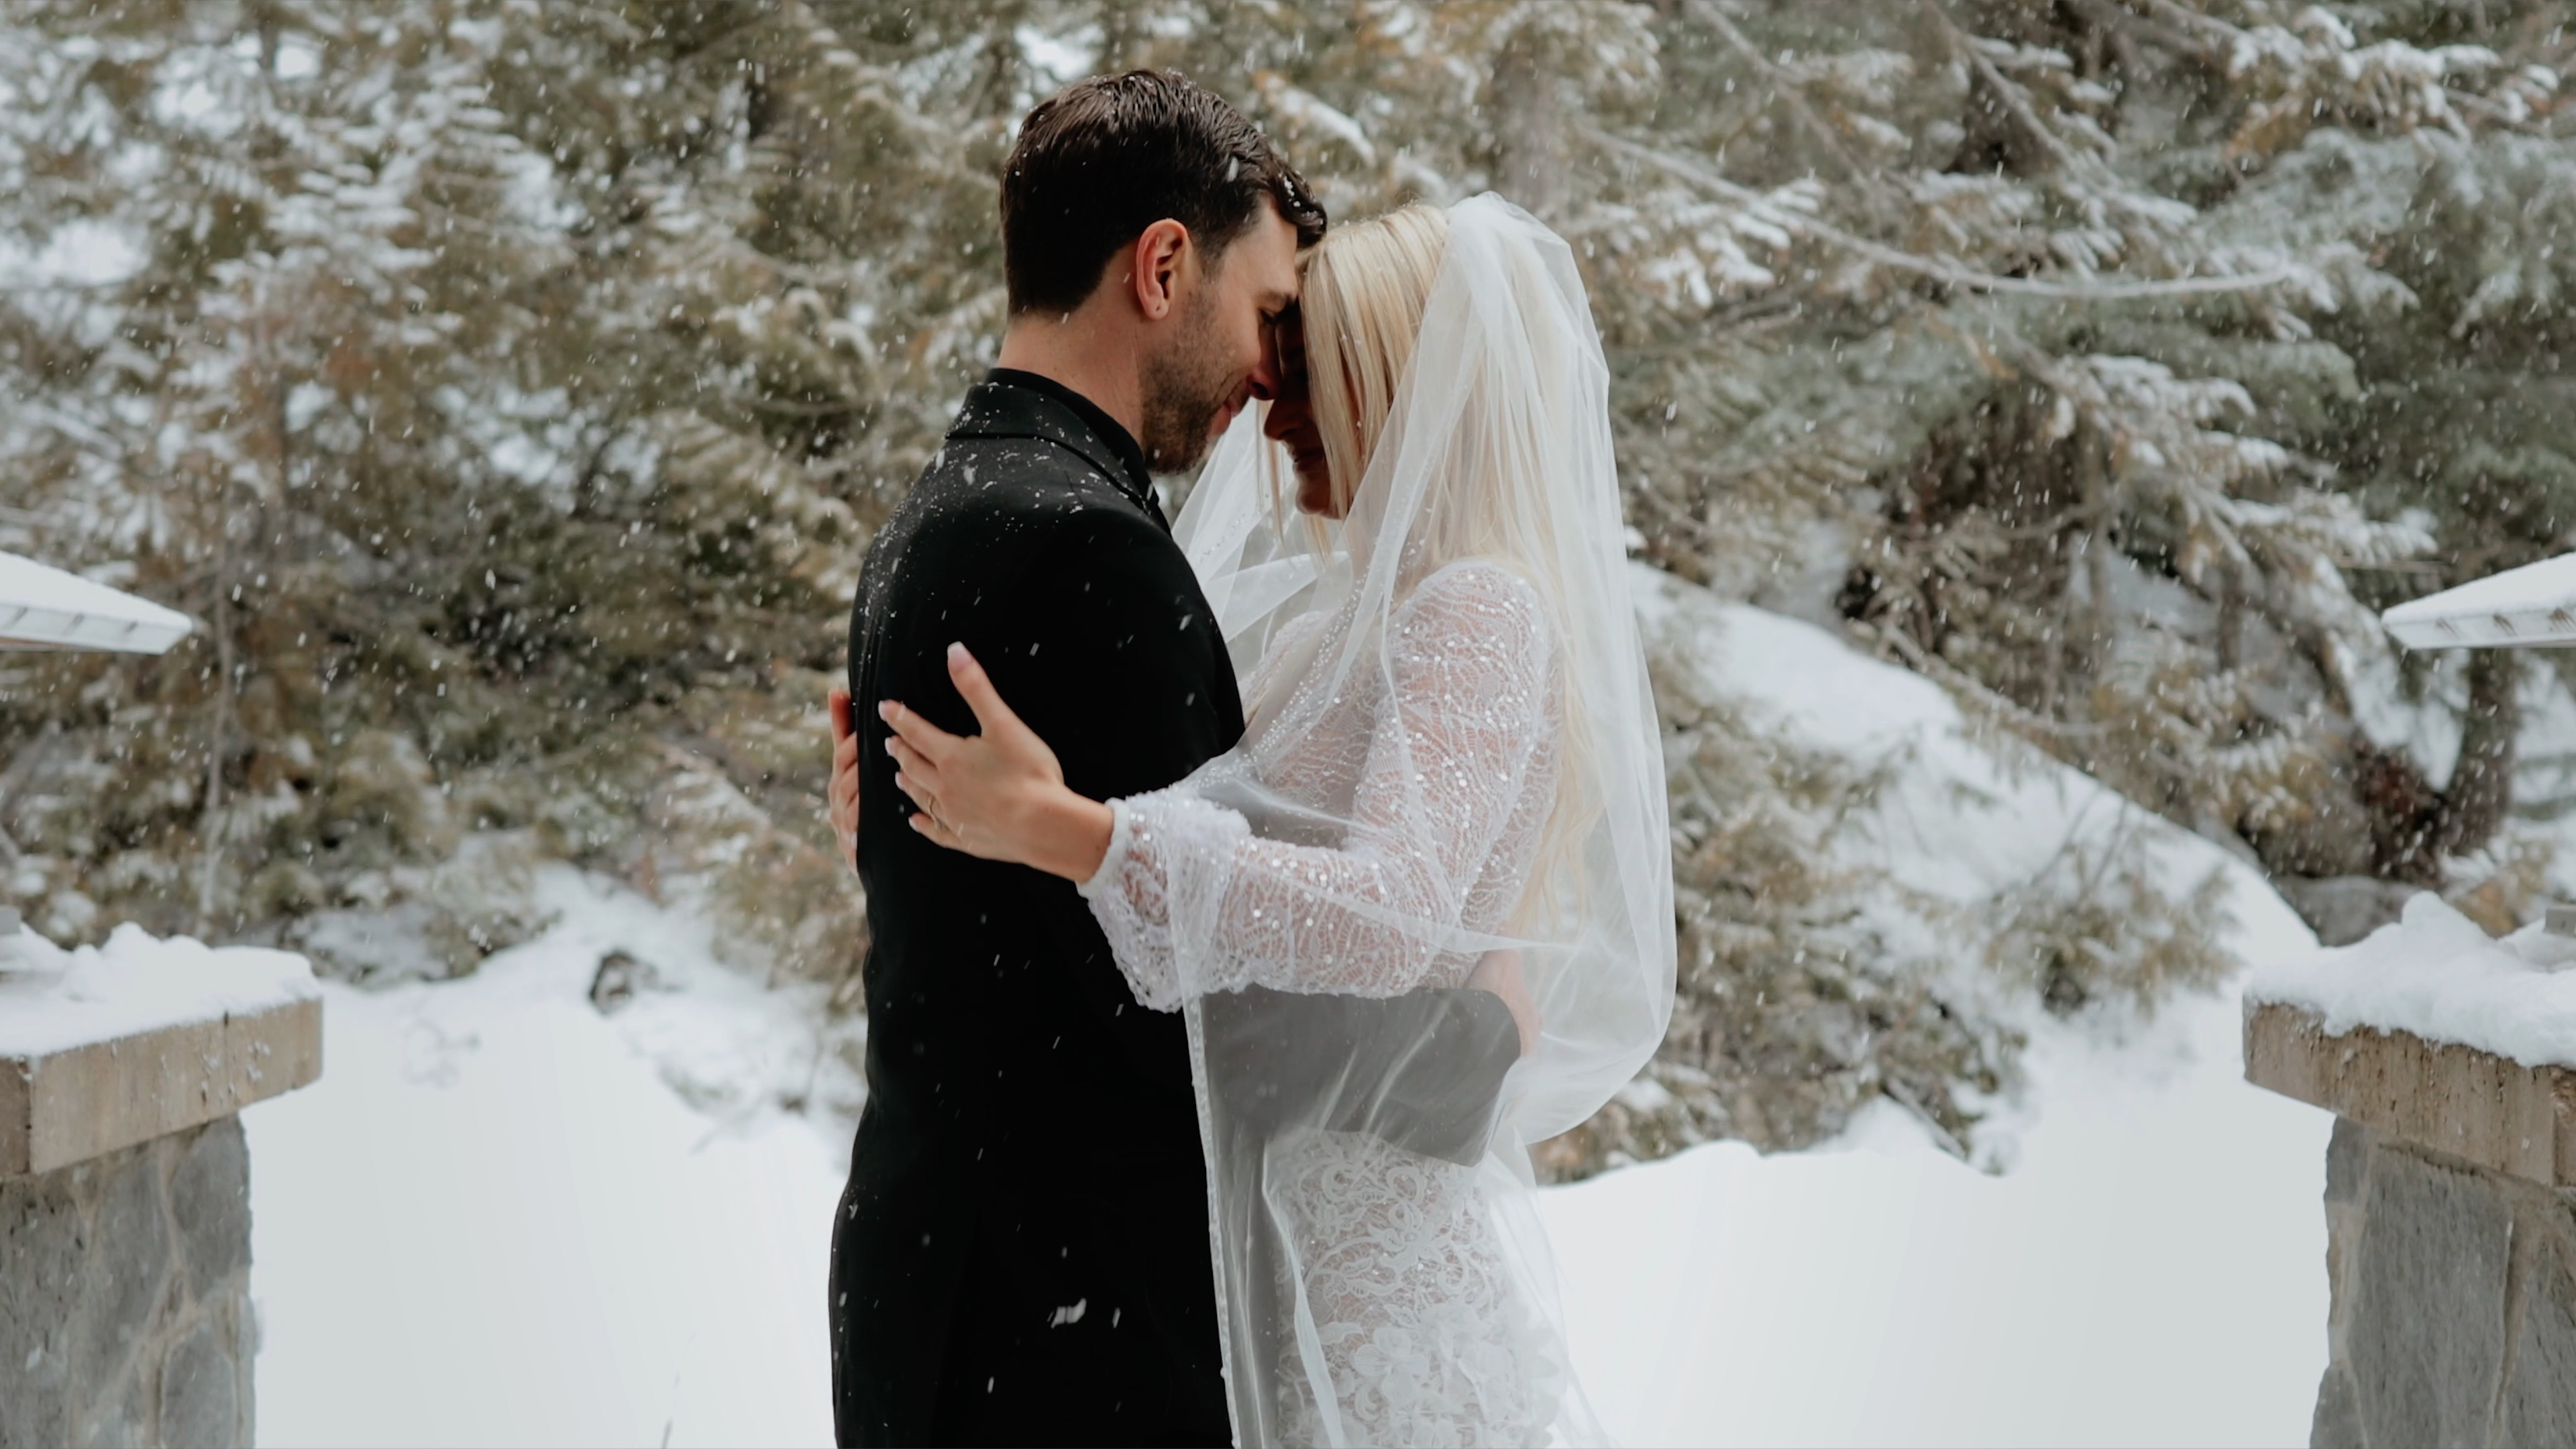 Karli + Mike | Whistler, Canada | Nita Lake Lodge